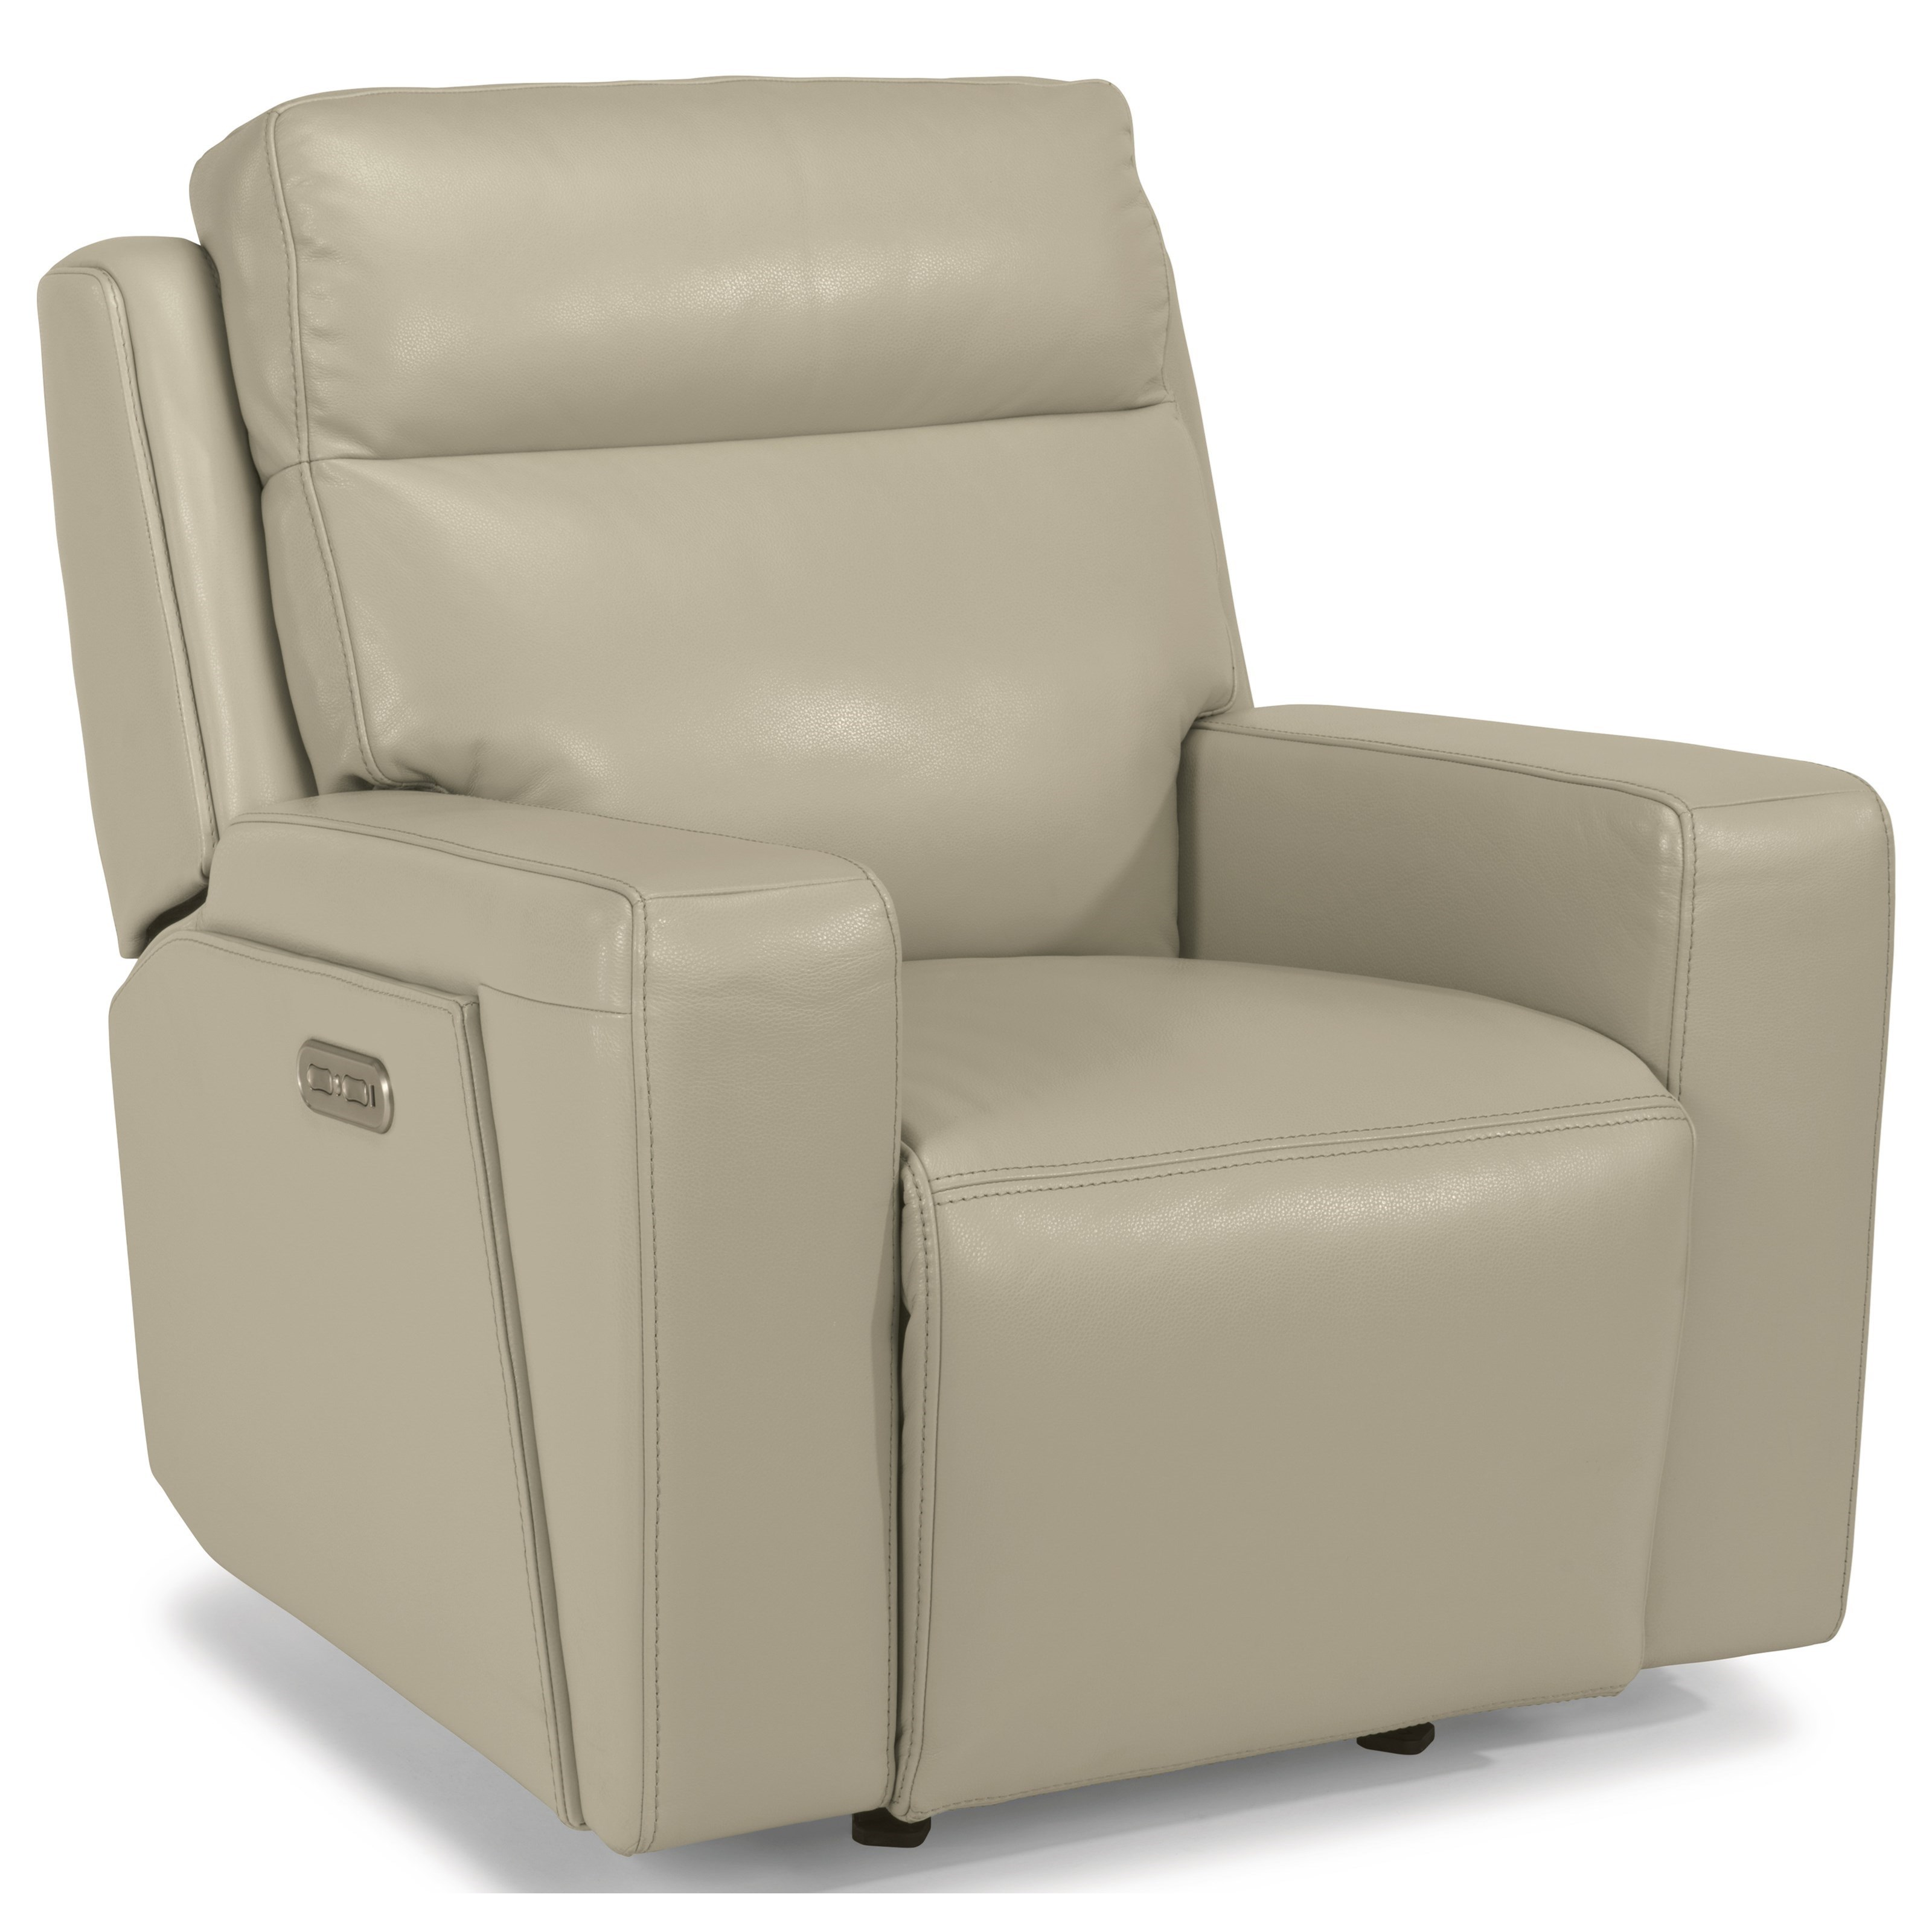 flexsteel power gliding recliner with power headrest item number